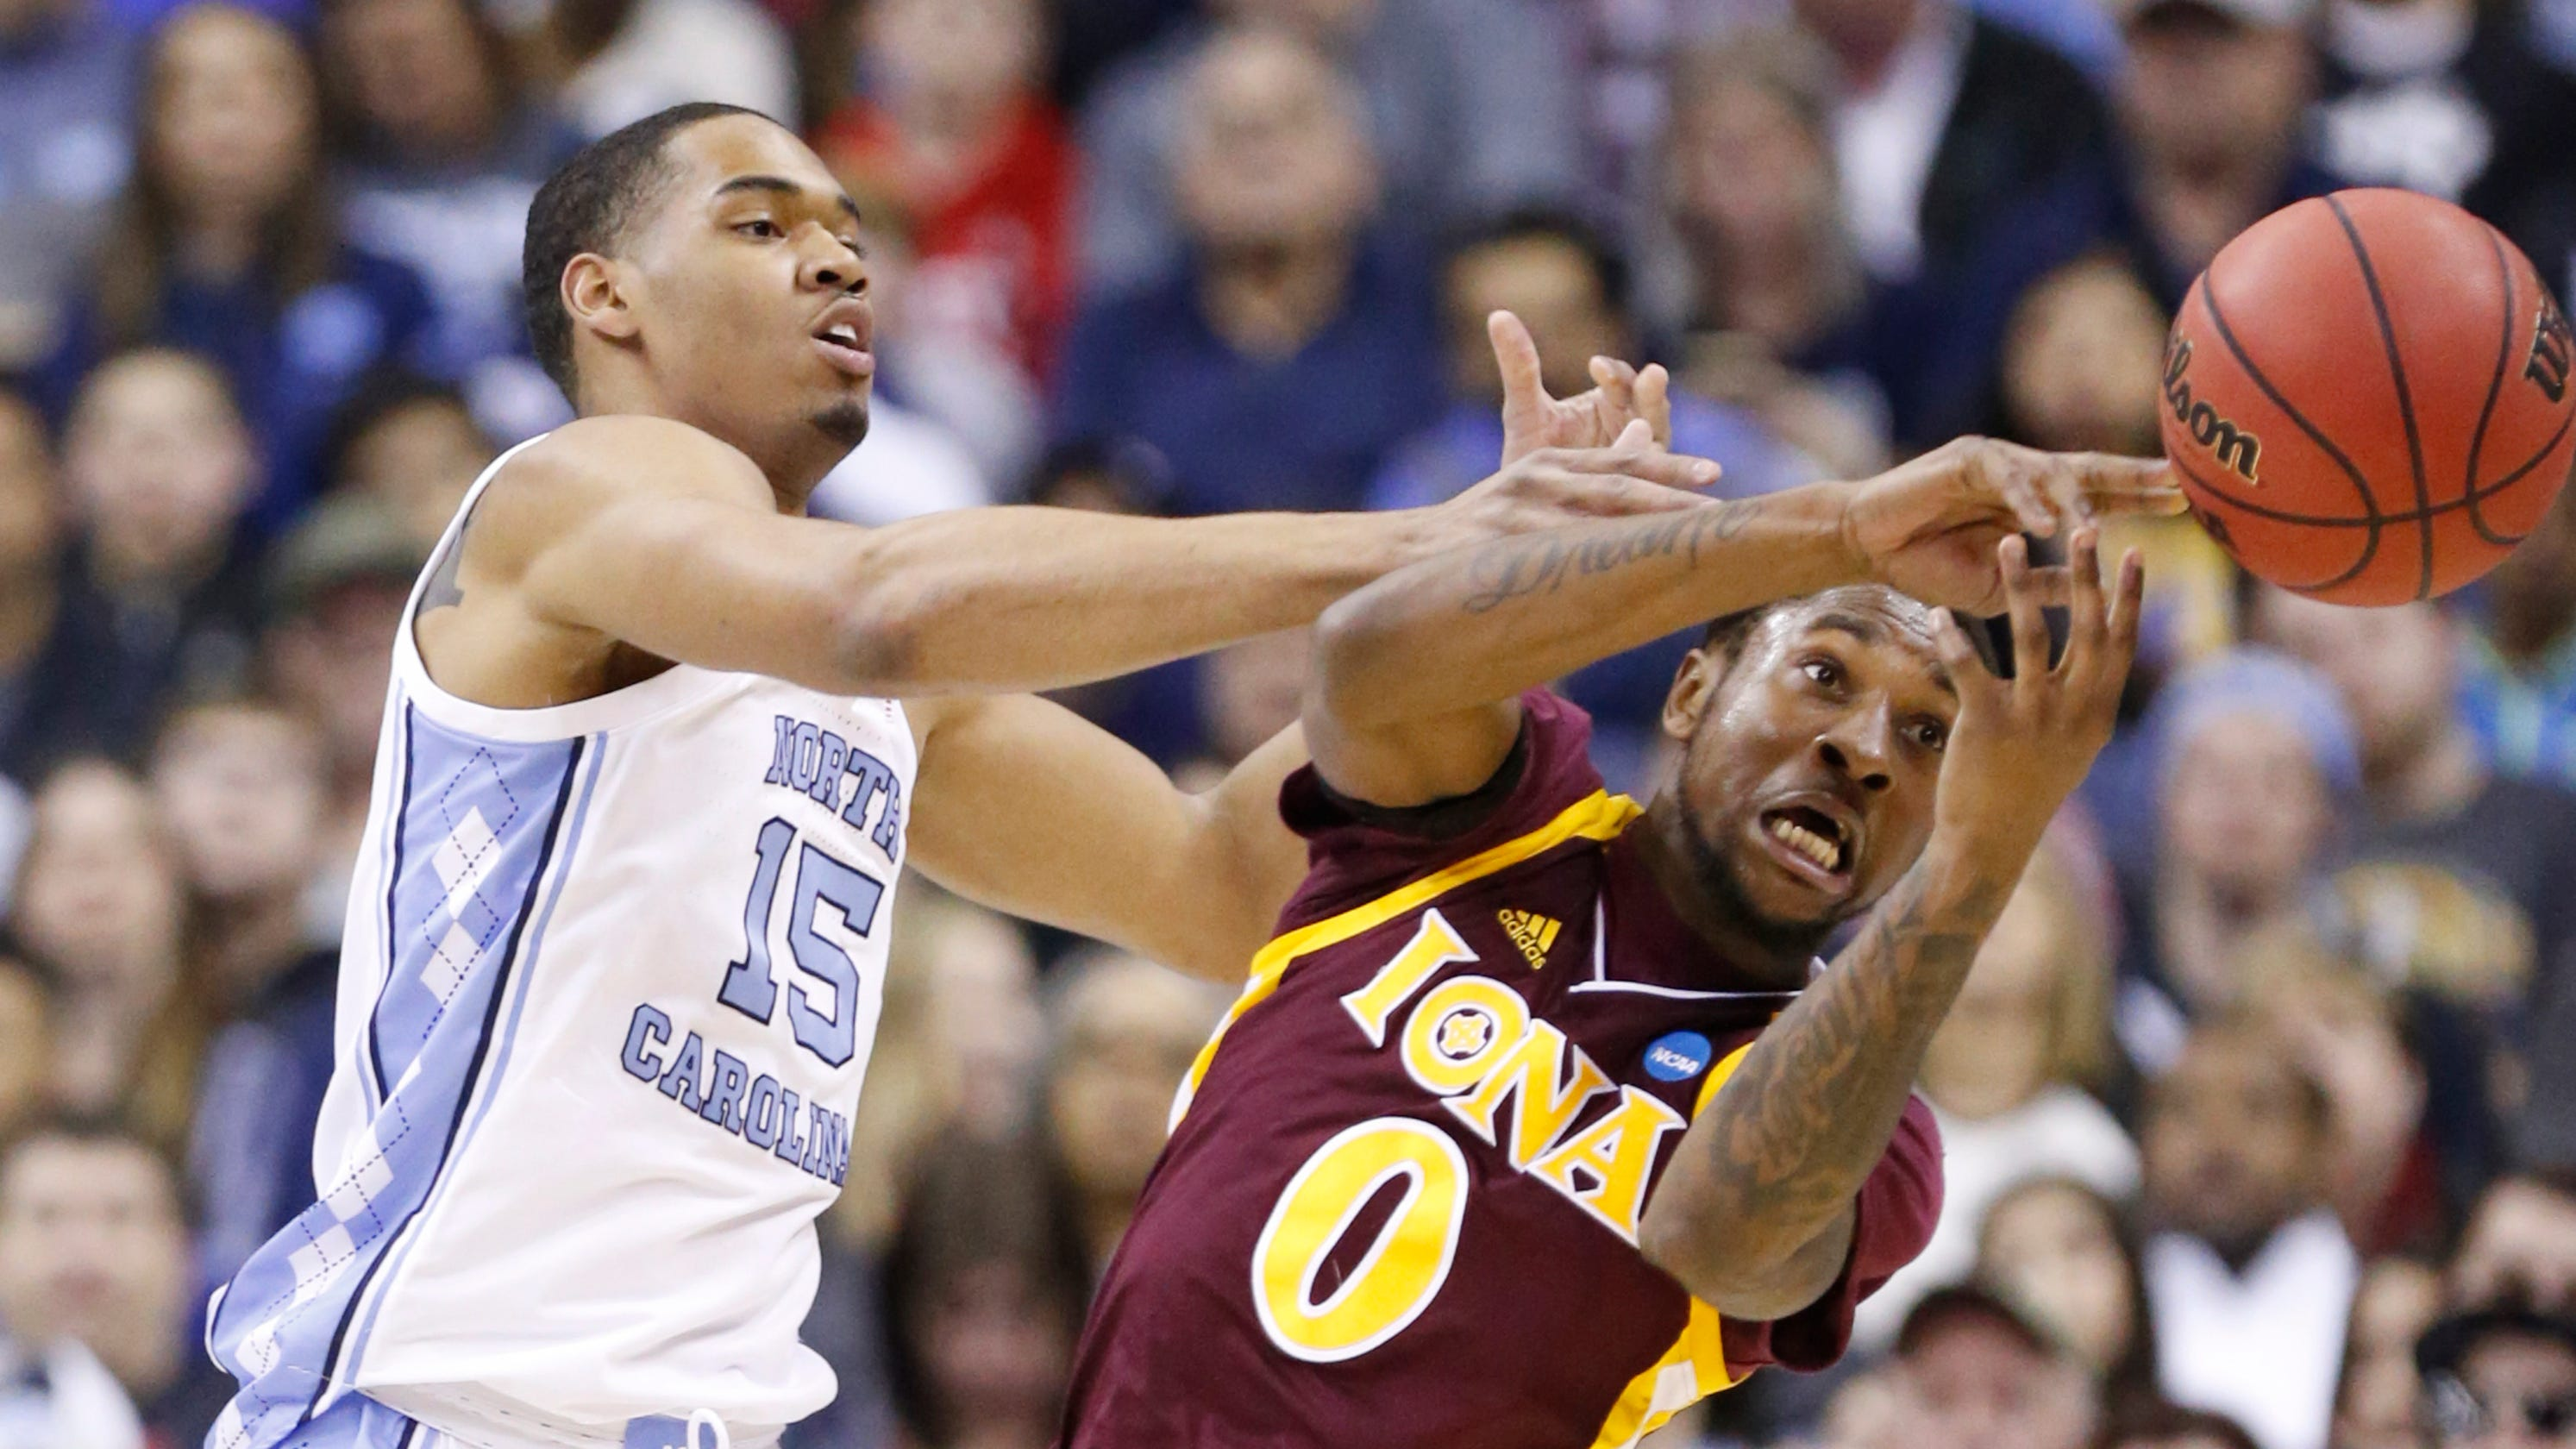 NCAA Tournament: Iona runs out of gas, falls to top seed ...